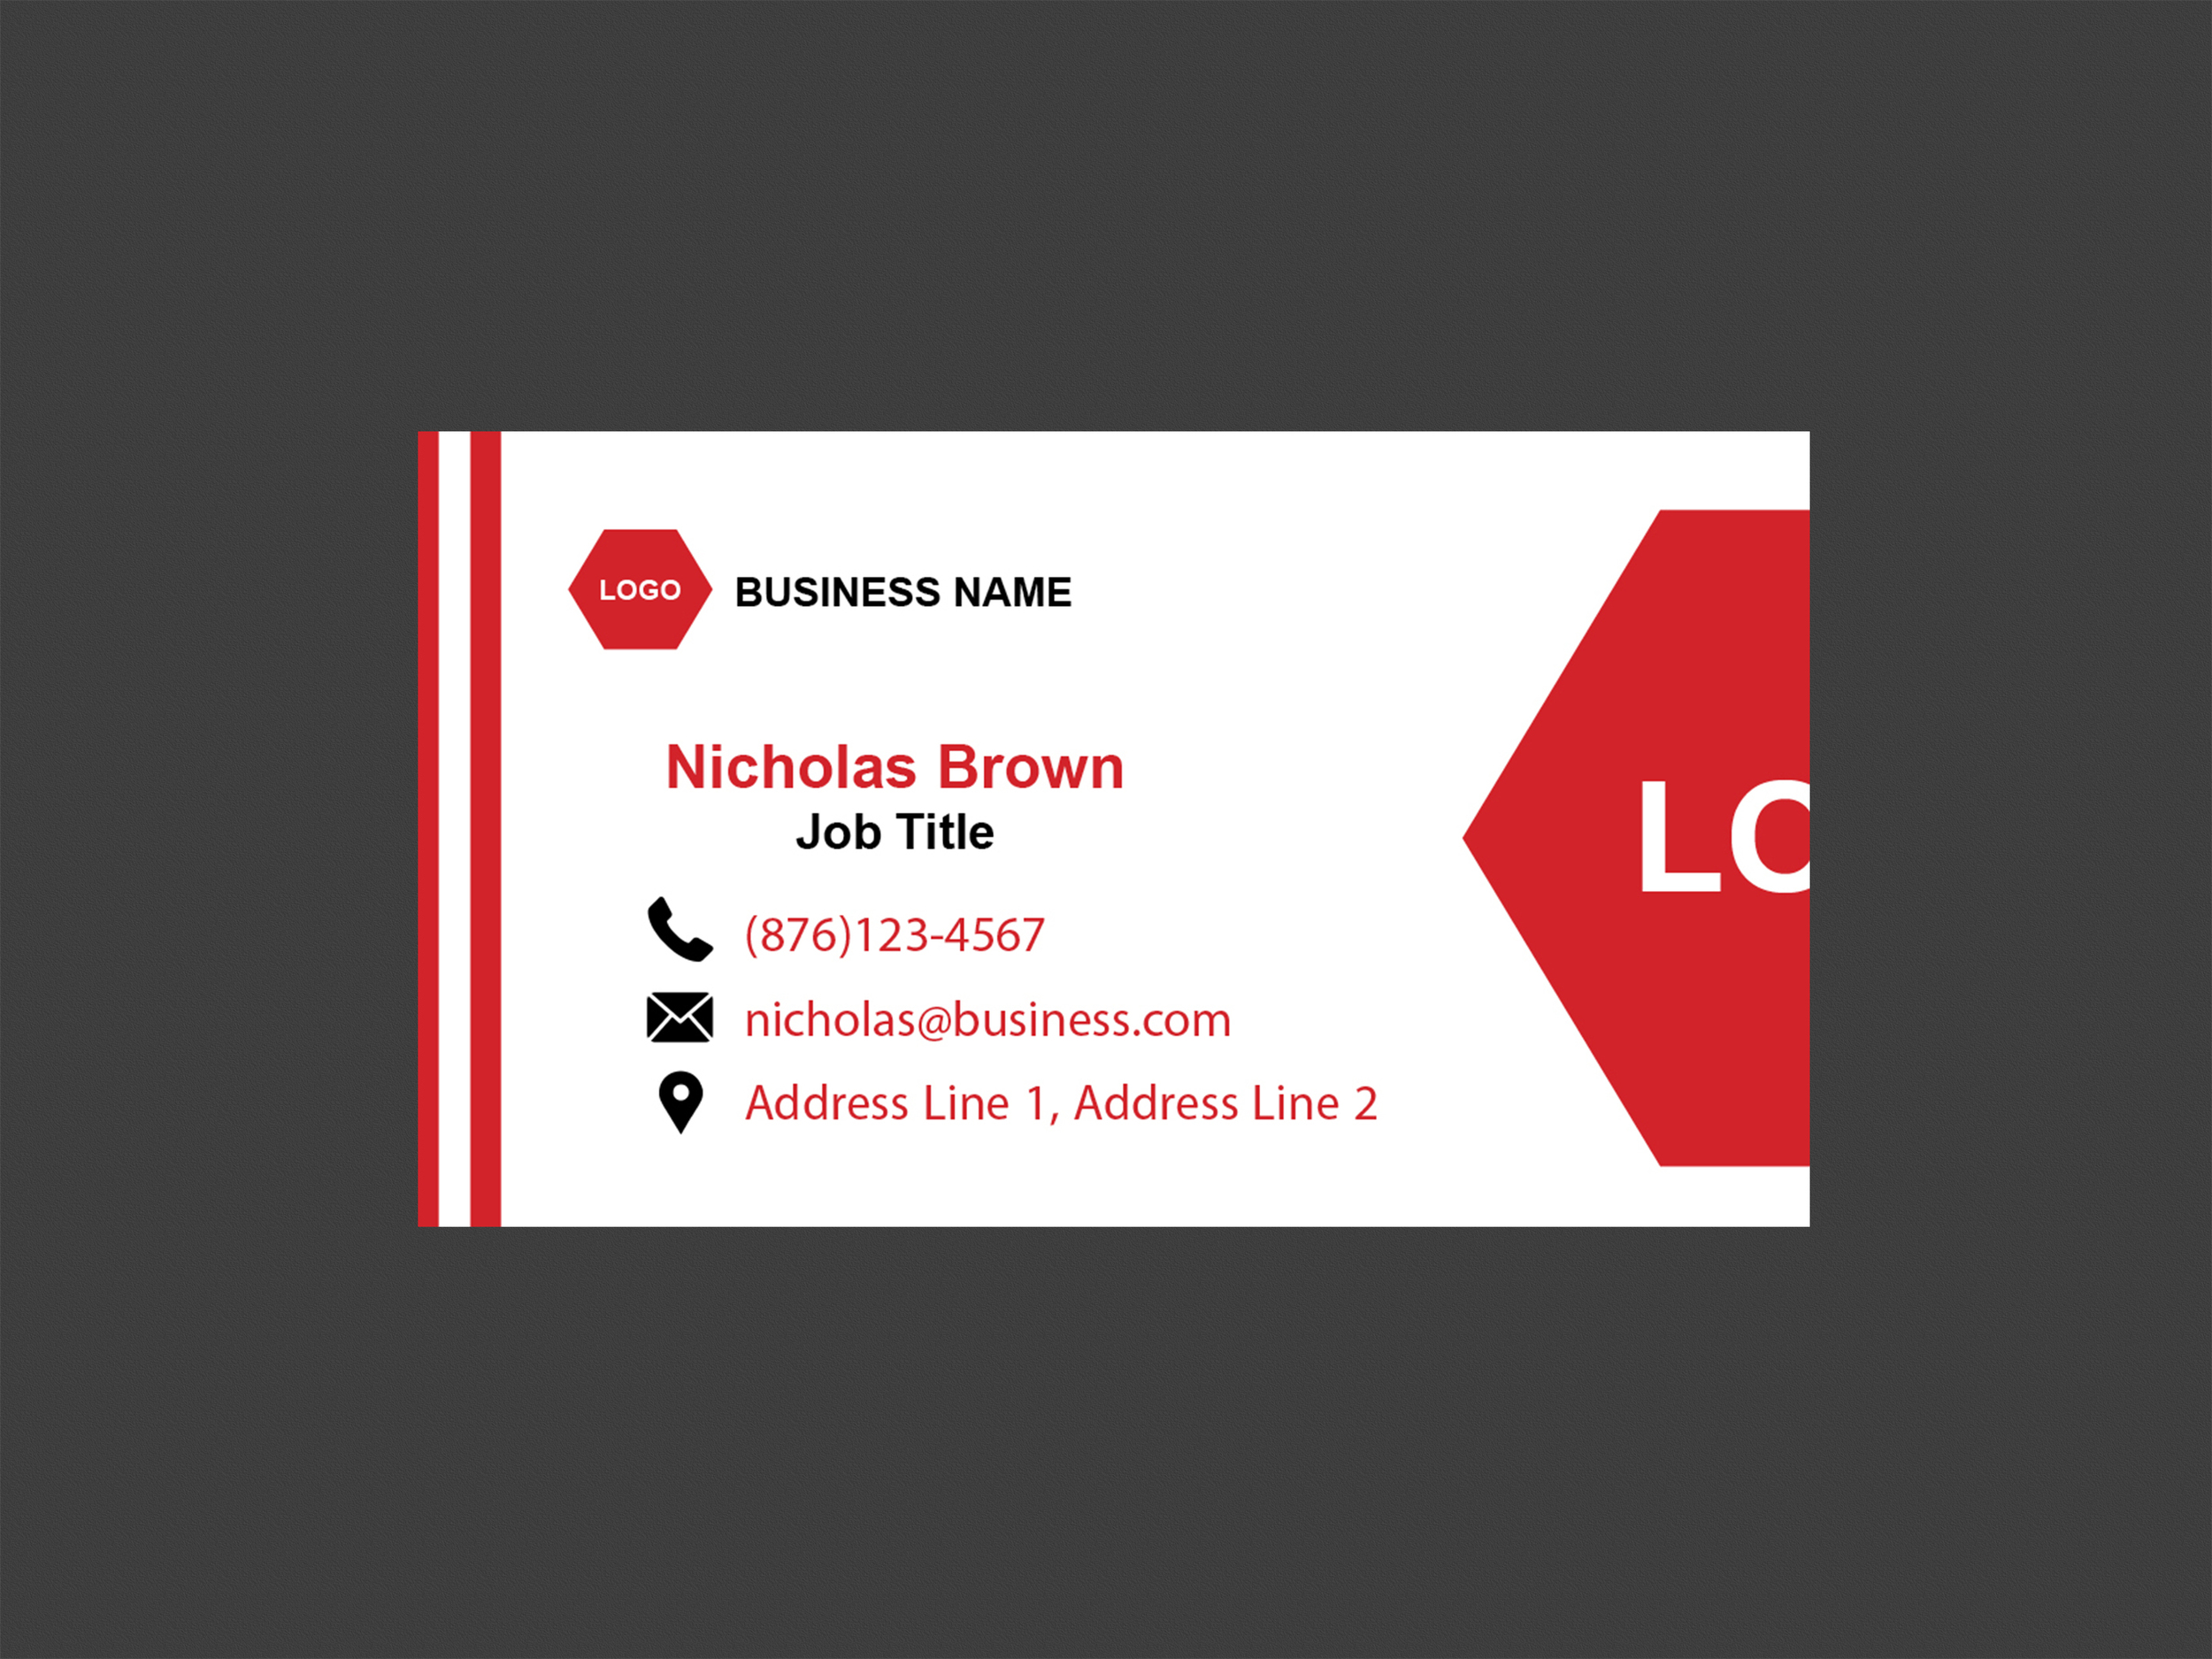 SINGLE-SIDED BUSINESS CARDS